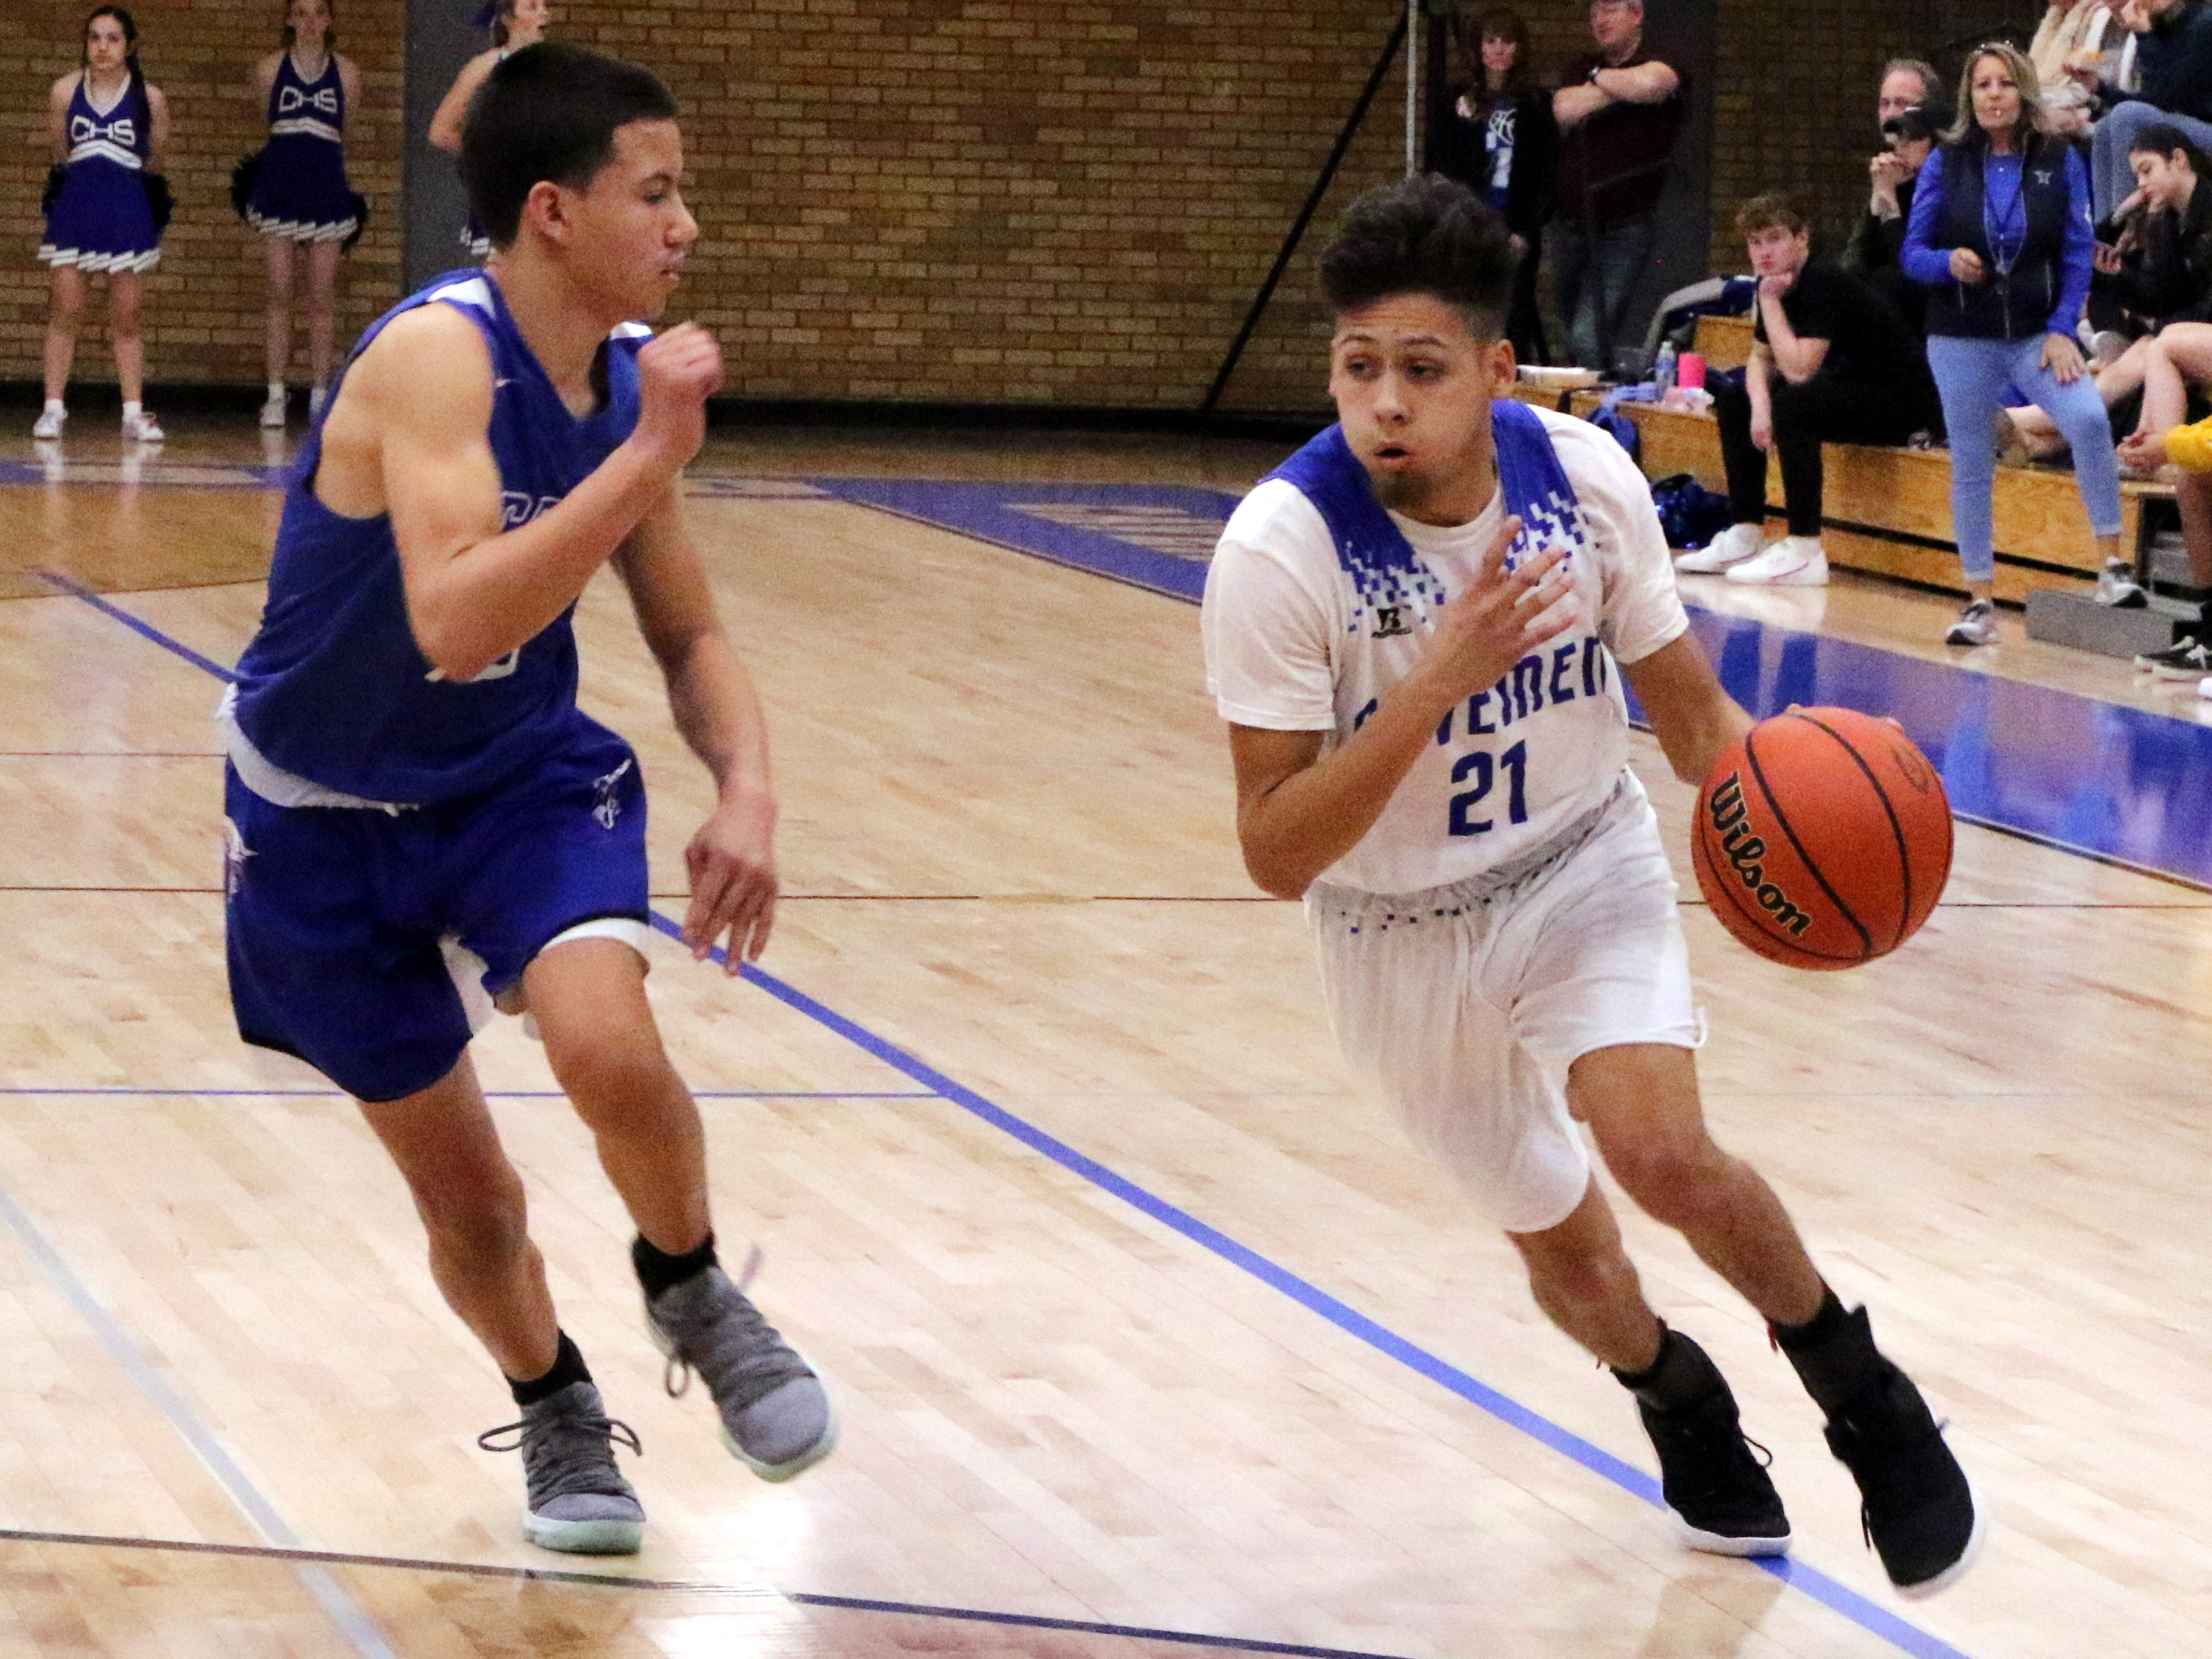 Patrick Espinoza drives the lane in the first quarter during Tuesday's game against Lovington.